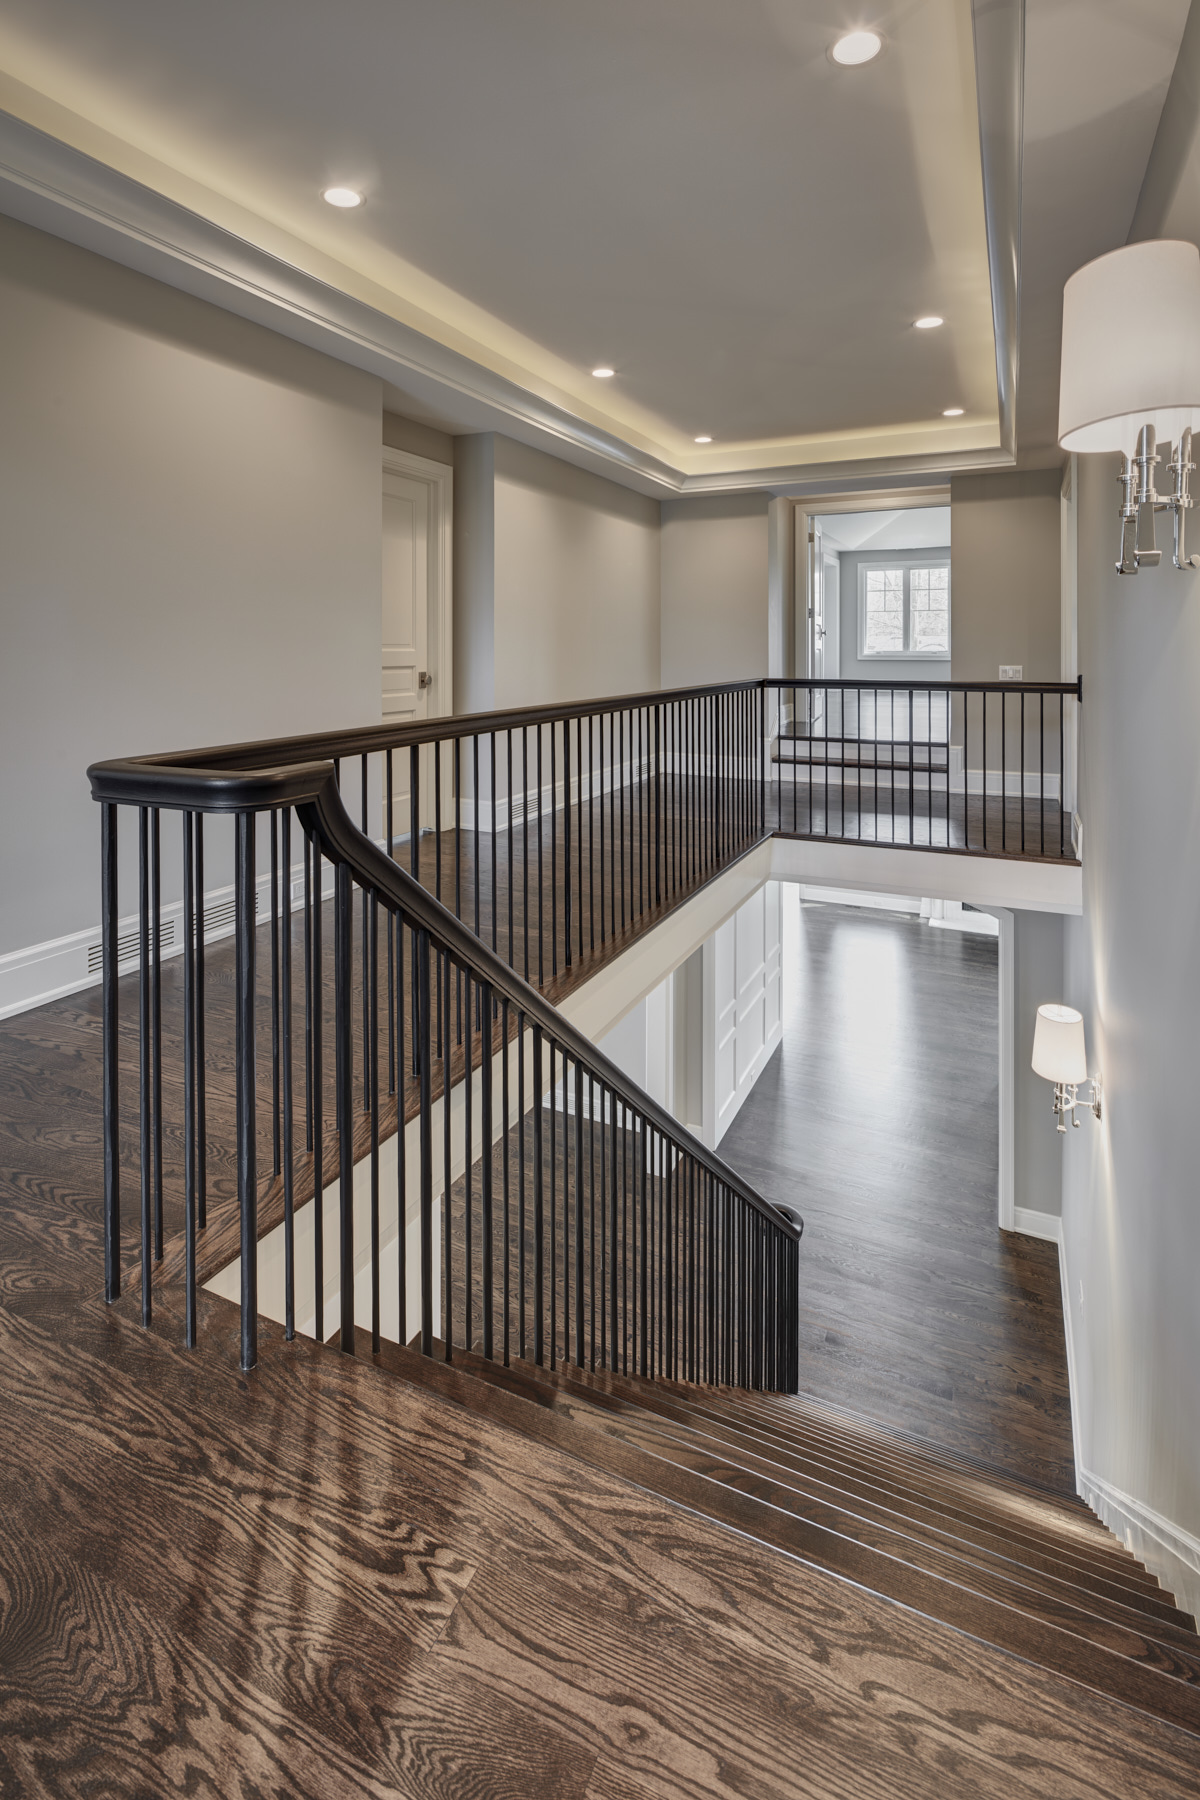 634 Glenhurst-HM Homes-4-12-17-2nd Level Hall-8bitTIFF.jpg